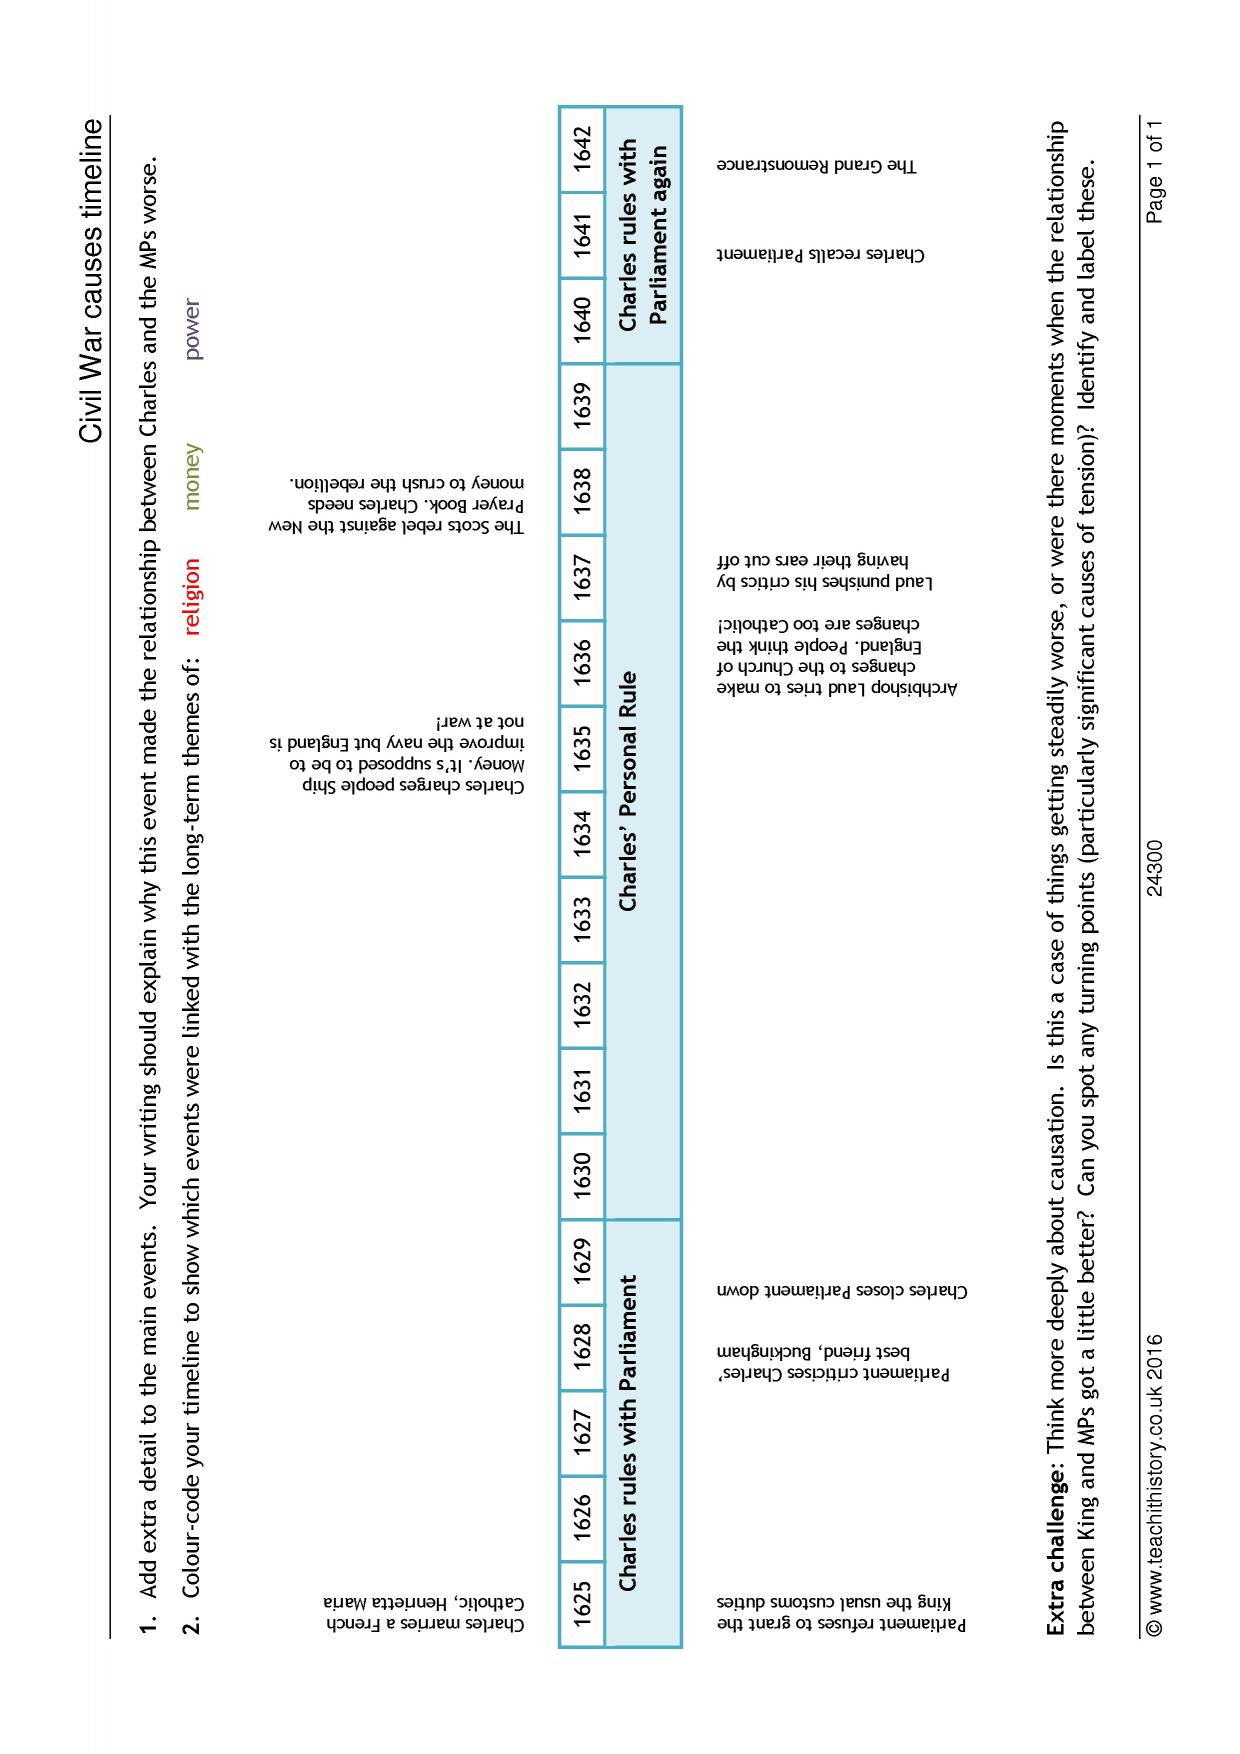 Civil War Causes Timeline